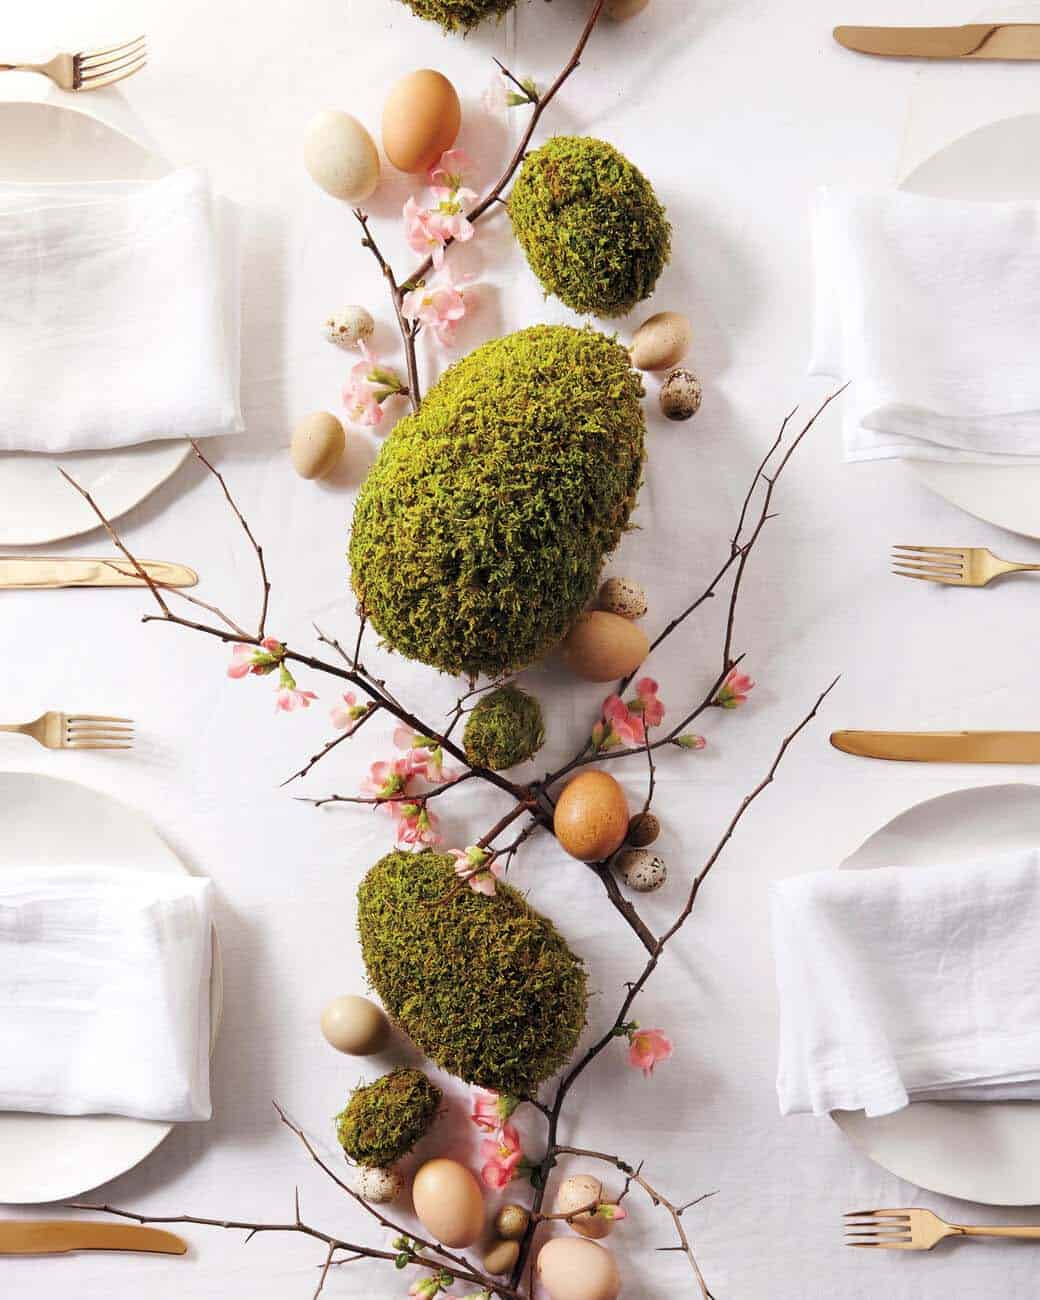 Inspiring Easter Table Centerpiece Ideas-12-1 Kindesign